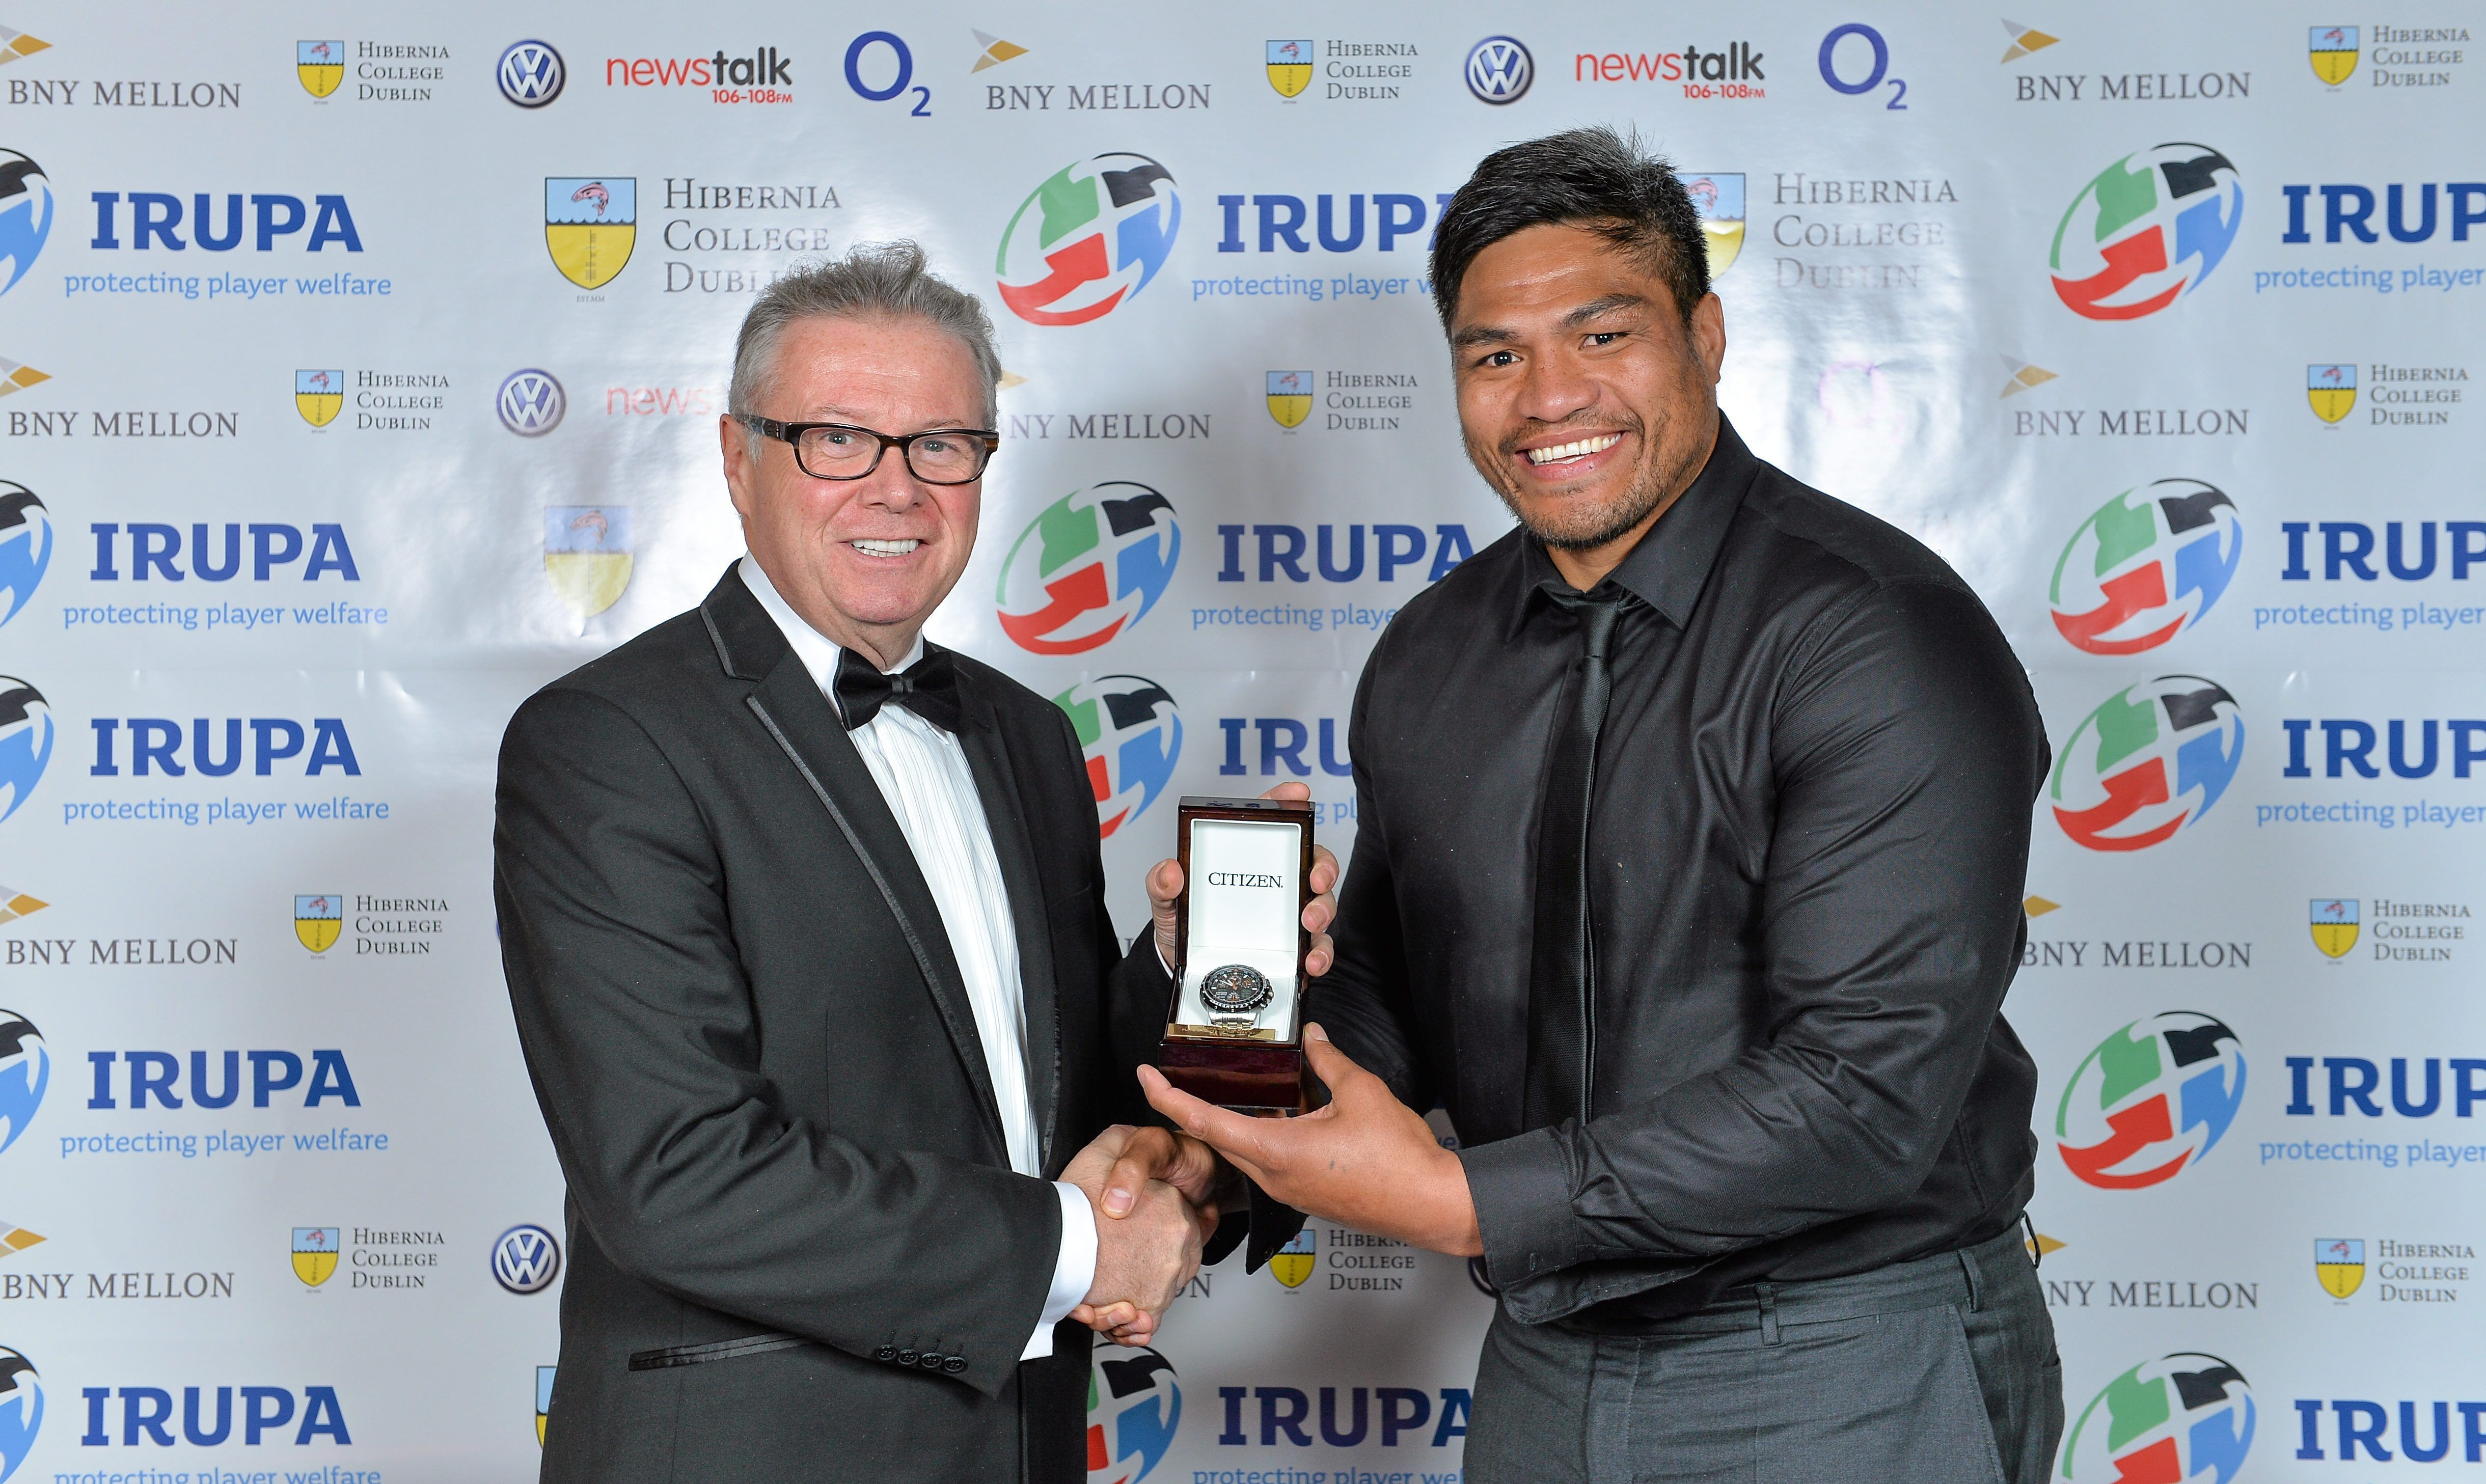 The 2013 Hibernia College IRUPA Players' Player of the Year, Nick ...